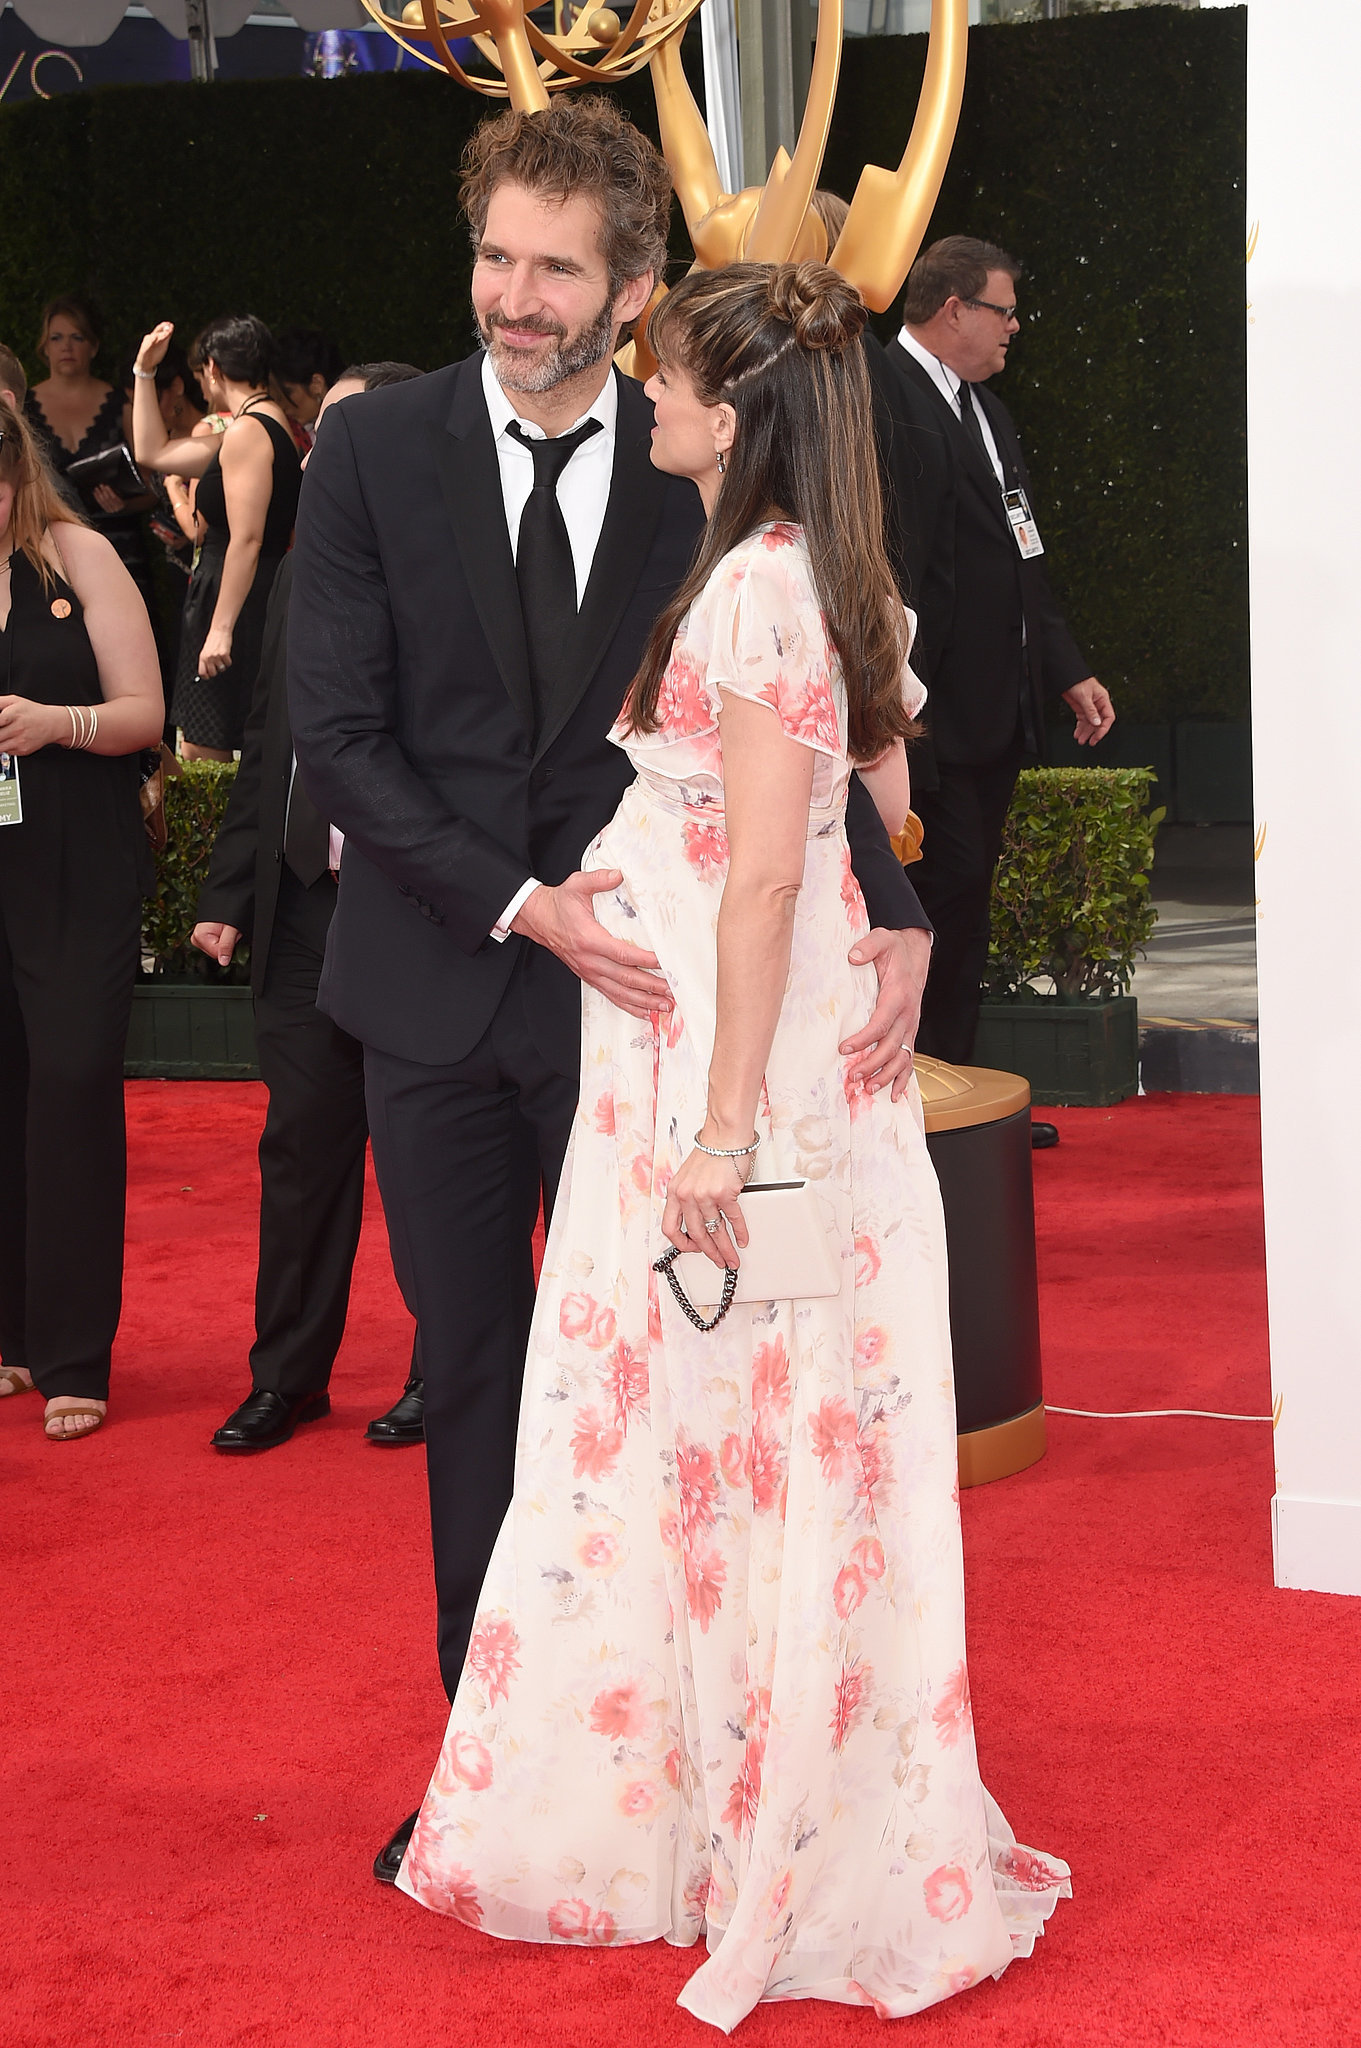 Amanda Peet Officially Carries the Cutest Accessory of the Night!